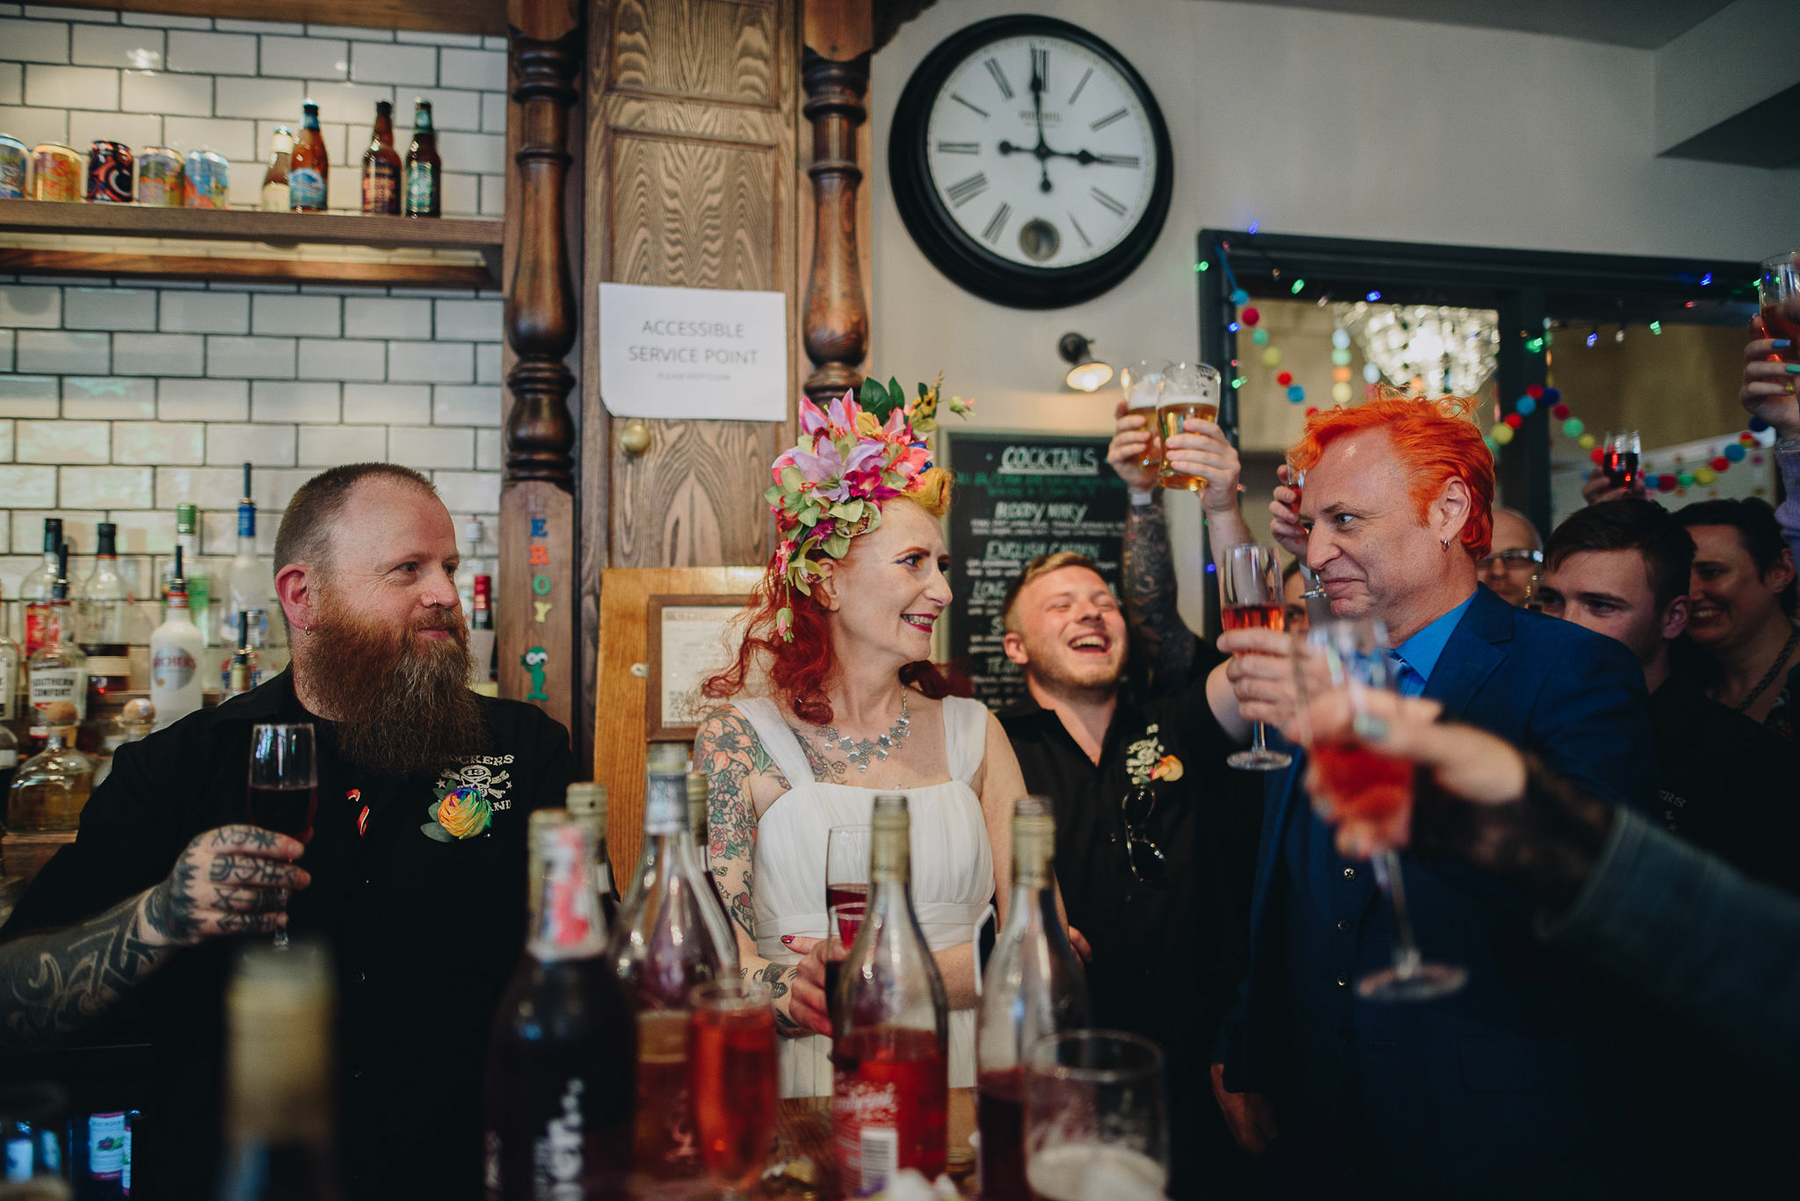 Alternative_Manchester_Northern_Quarter_Wedding_Photography_The_Pin-Up_Bride-50.jpg